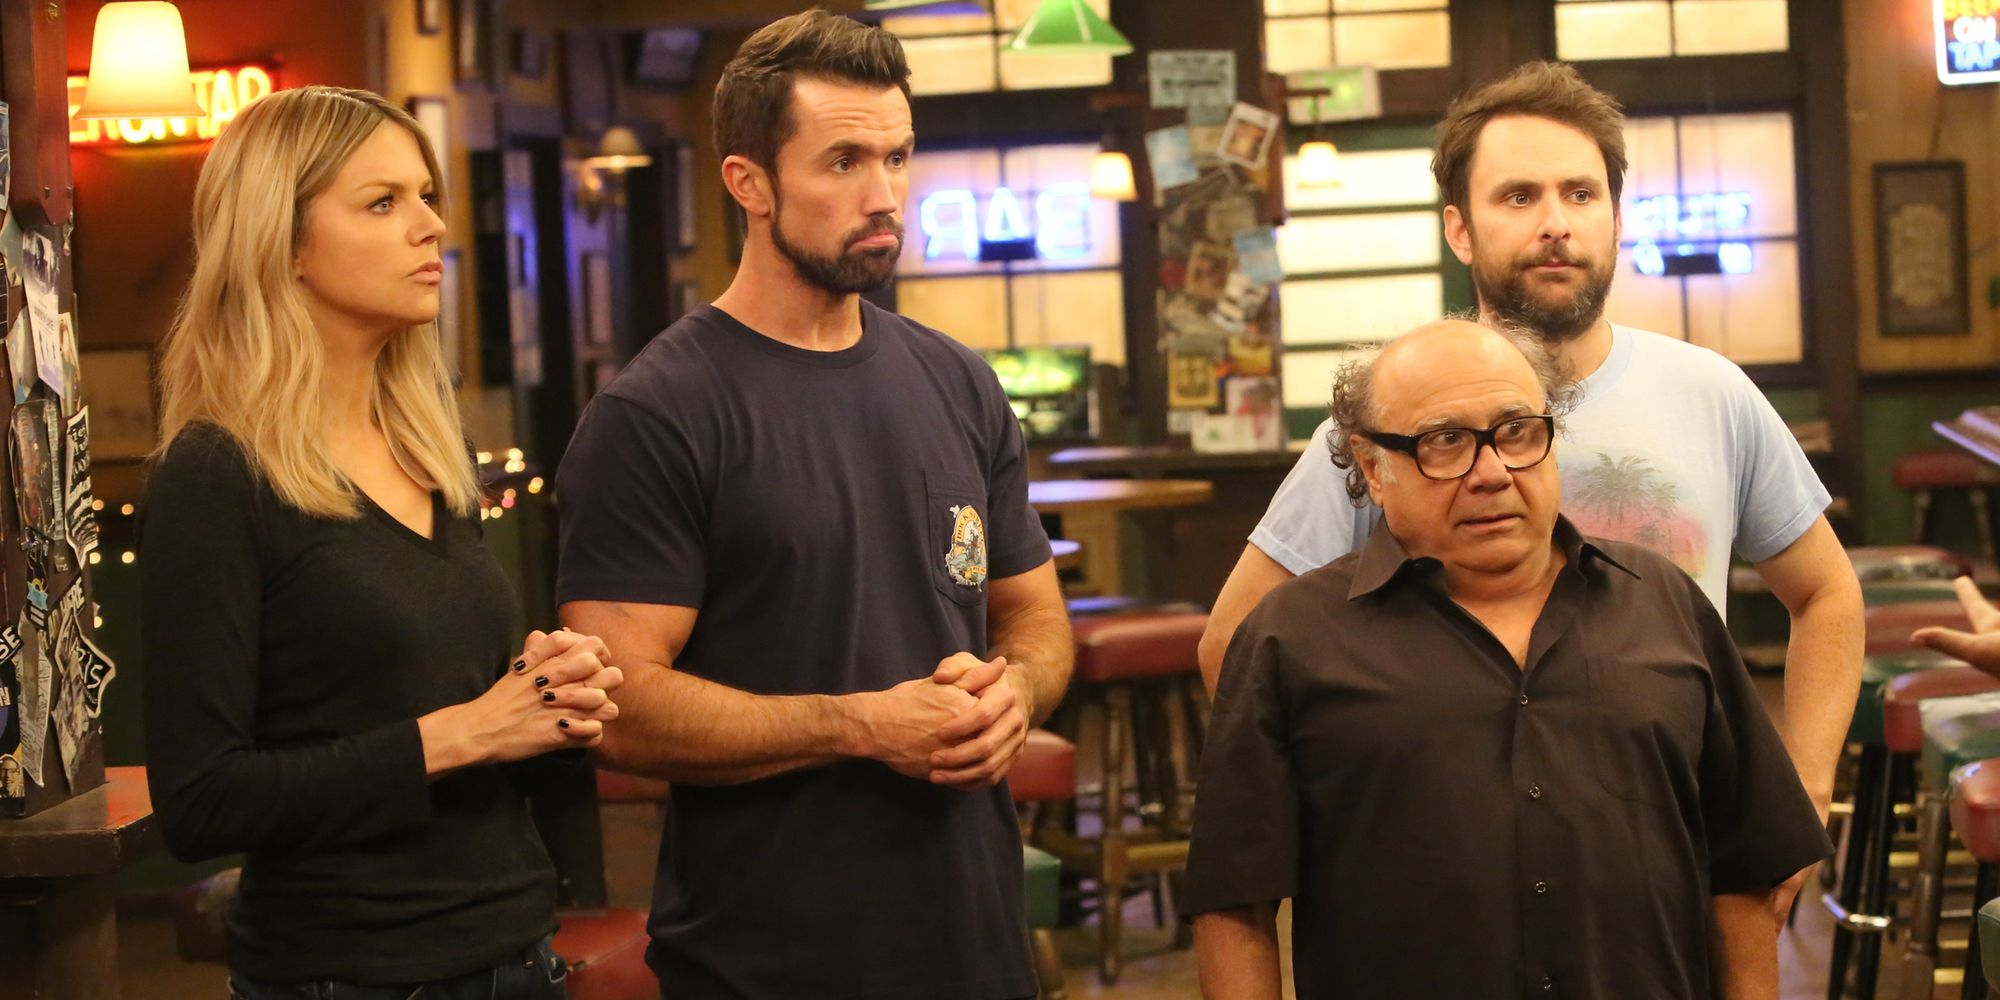 20 Things Wrong With It's Always Sunny In Philadelphia Everyone Chooses To Ignore